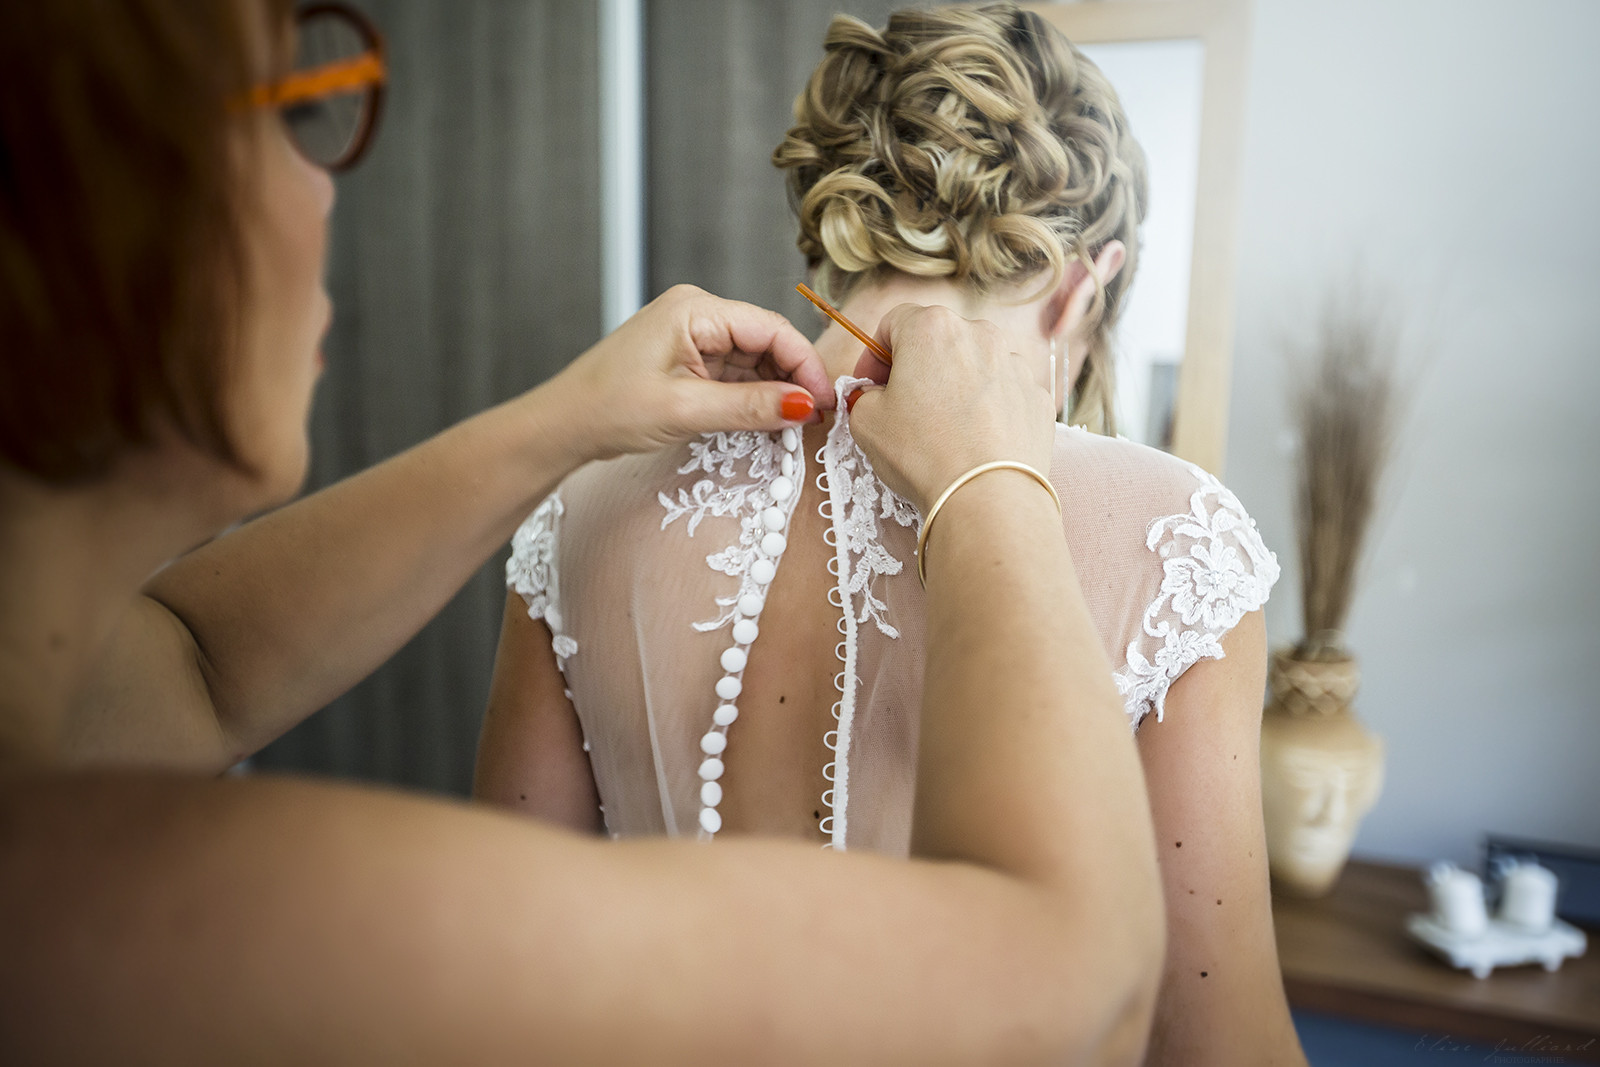 elise-julliard-photographe-mariage-lyon-rhone-alpes-vienne-mariee-preparatif-robe-wedding-3